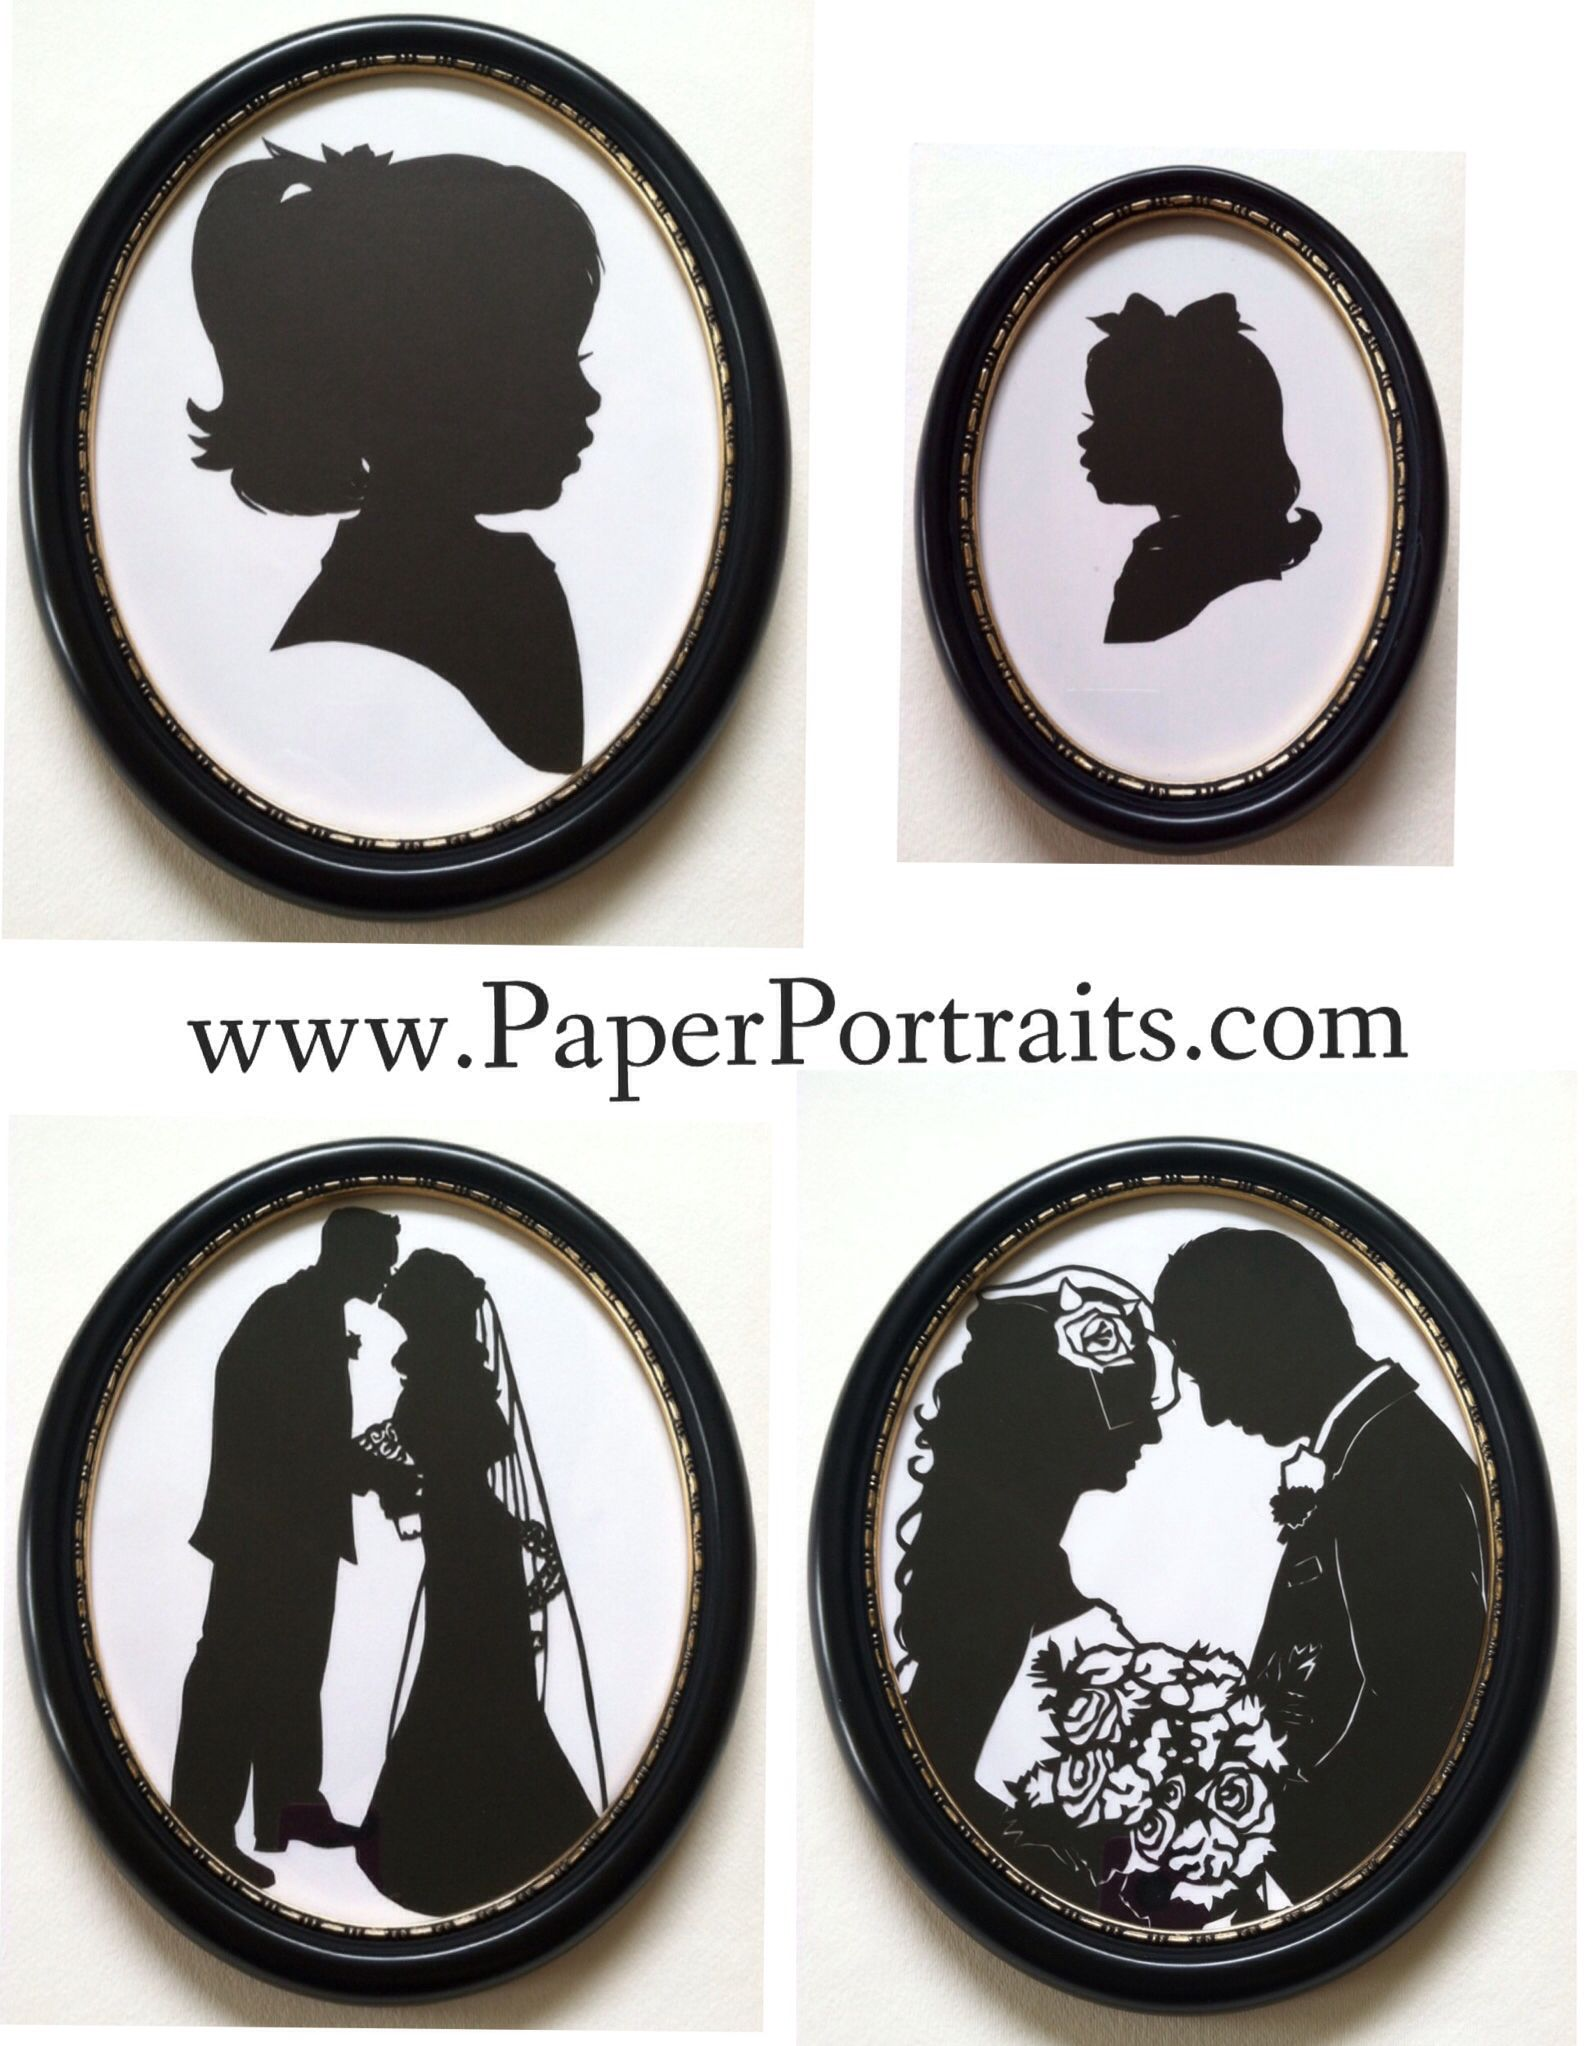 Black Silhouette frame with gold accents now available at www.paperportraits.com . 5x7 and 8x10 sizes. Silhouettes are hand cut with scissors and French Silhouette paper. Copyright owned by Silhouette Artist Kathryn Flocken.